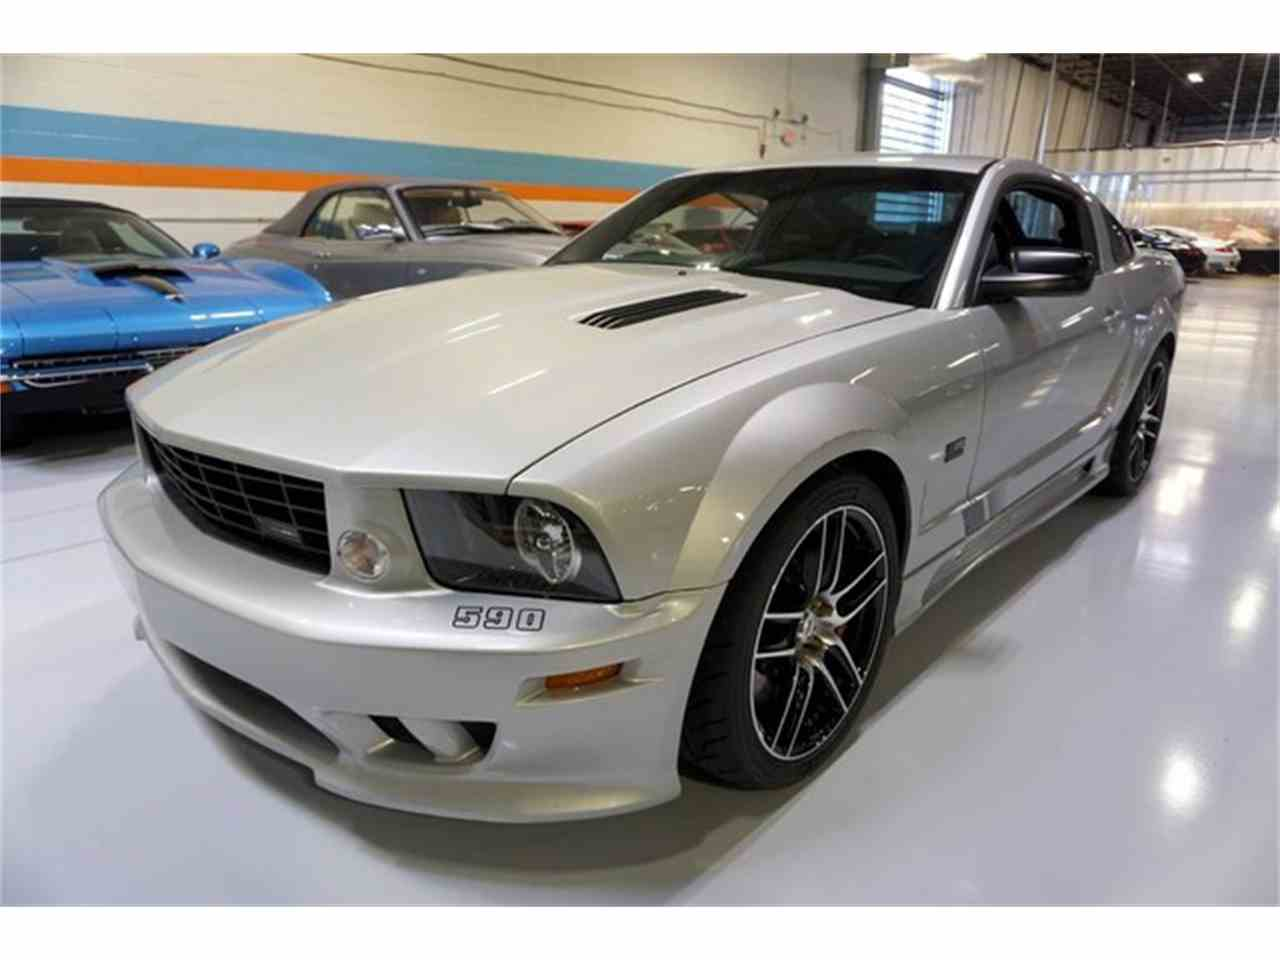 Large Picture of '06 Ford Mustang - $33,990.00 Offered by R&H Motor Car Group - JHI8